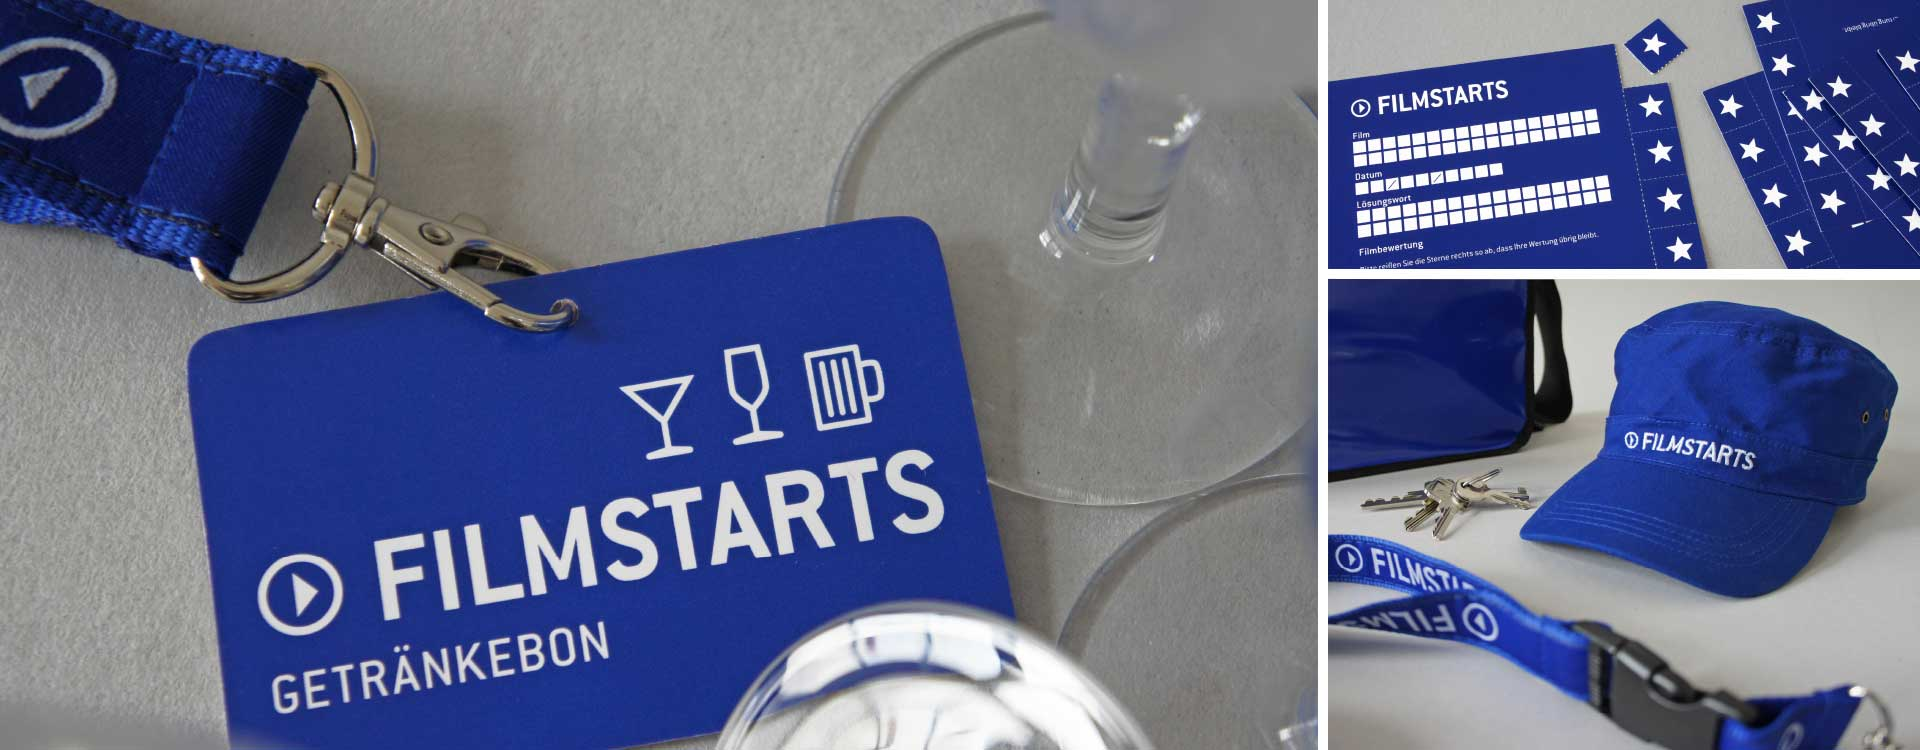 Drink vouchers, film rating cards, and cap with Filmstarts logo